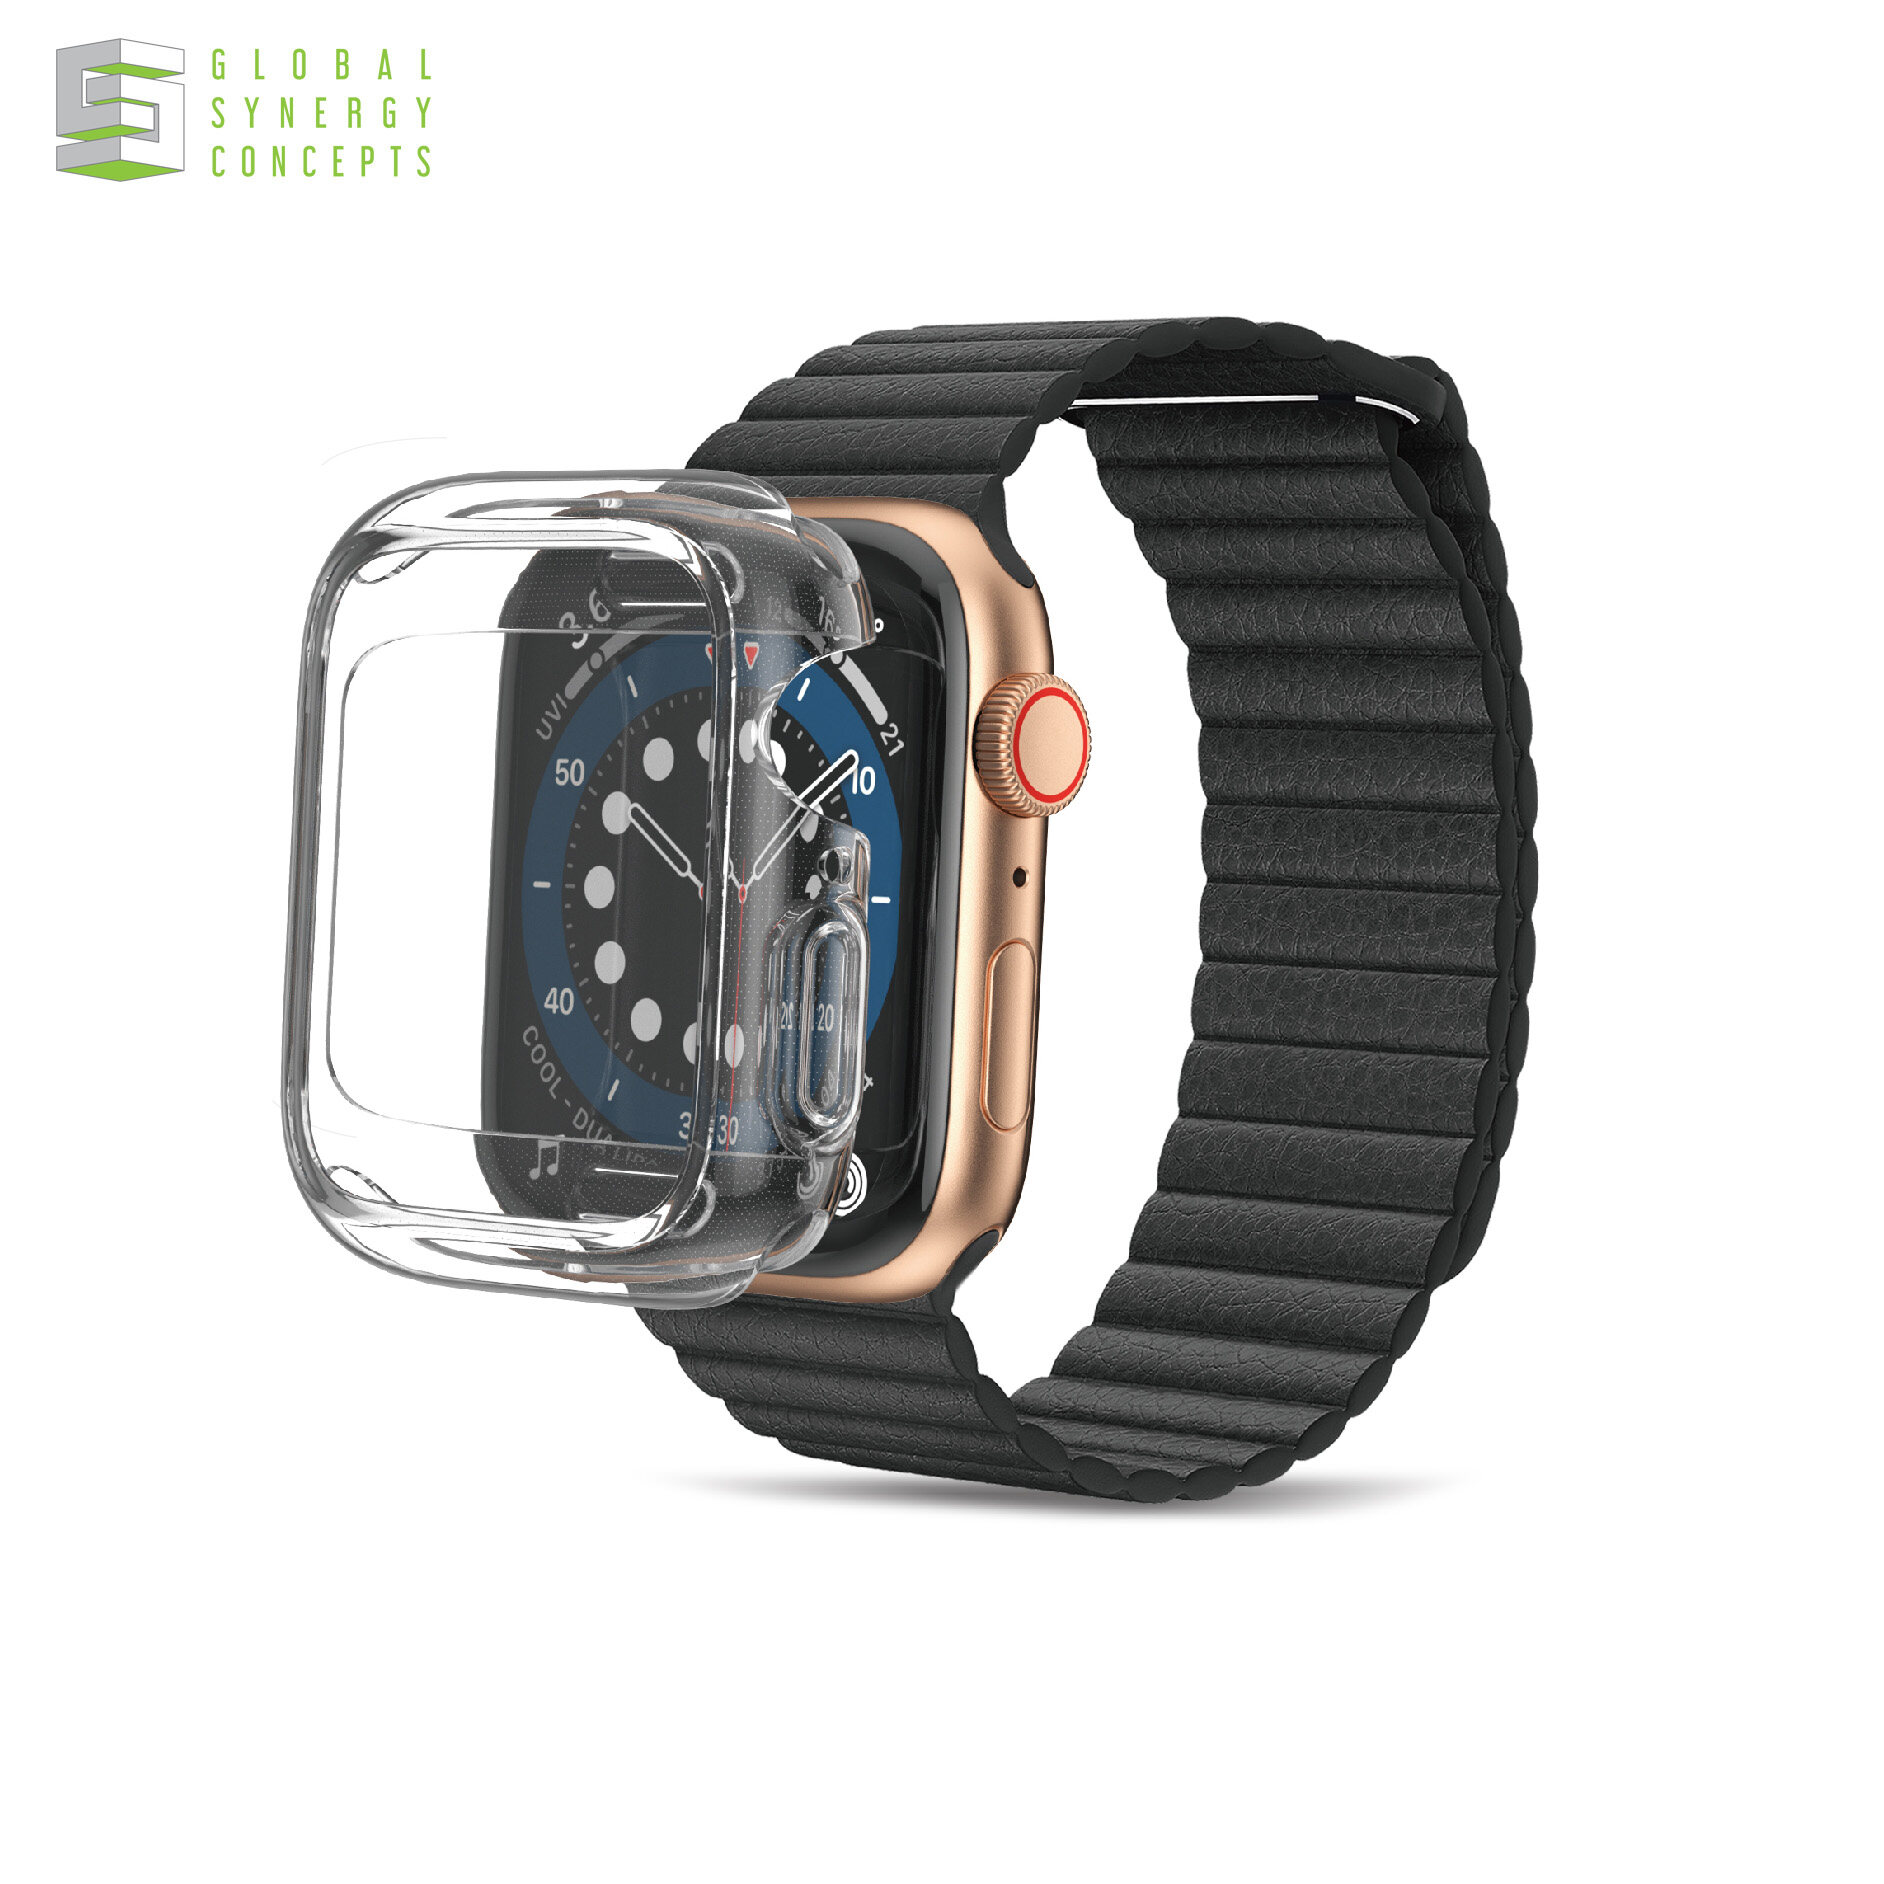 AMAZINGthing CASE Anti-bacterial Outre Drop proof for AppleWatch Series 6 & SE 40mm